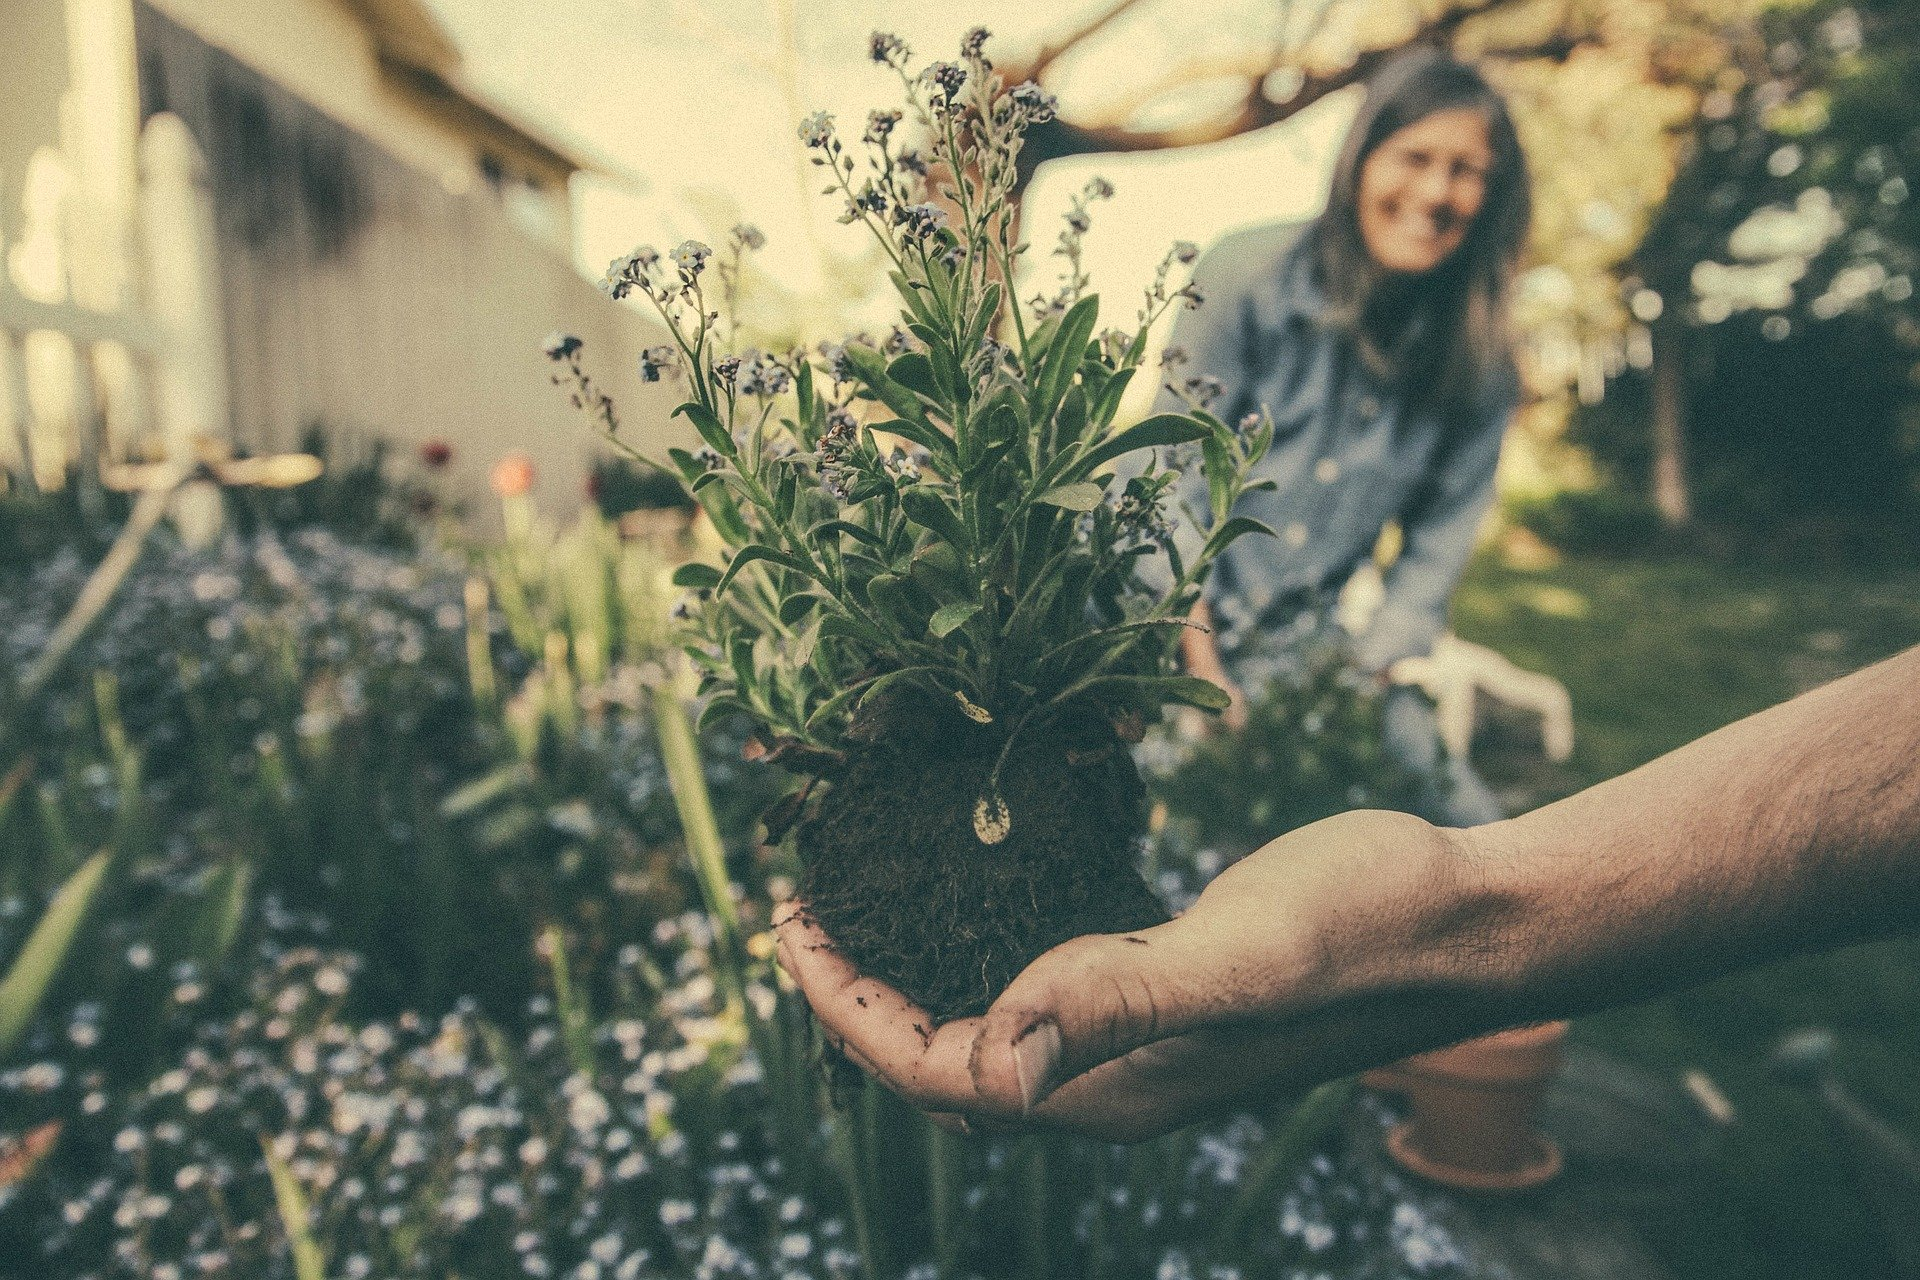 Landscaping Gardening And Yard Work For Your Health